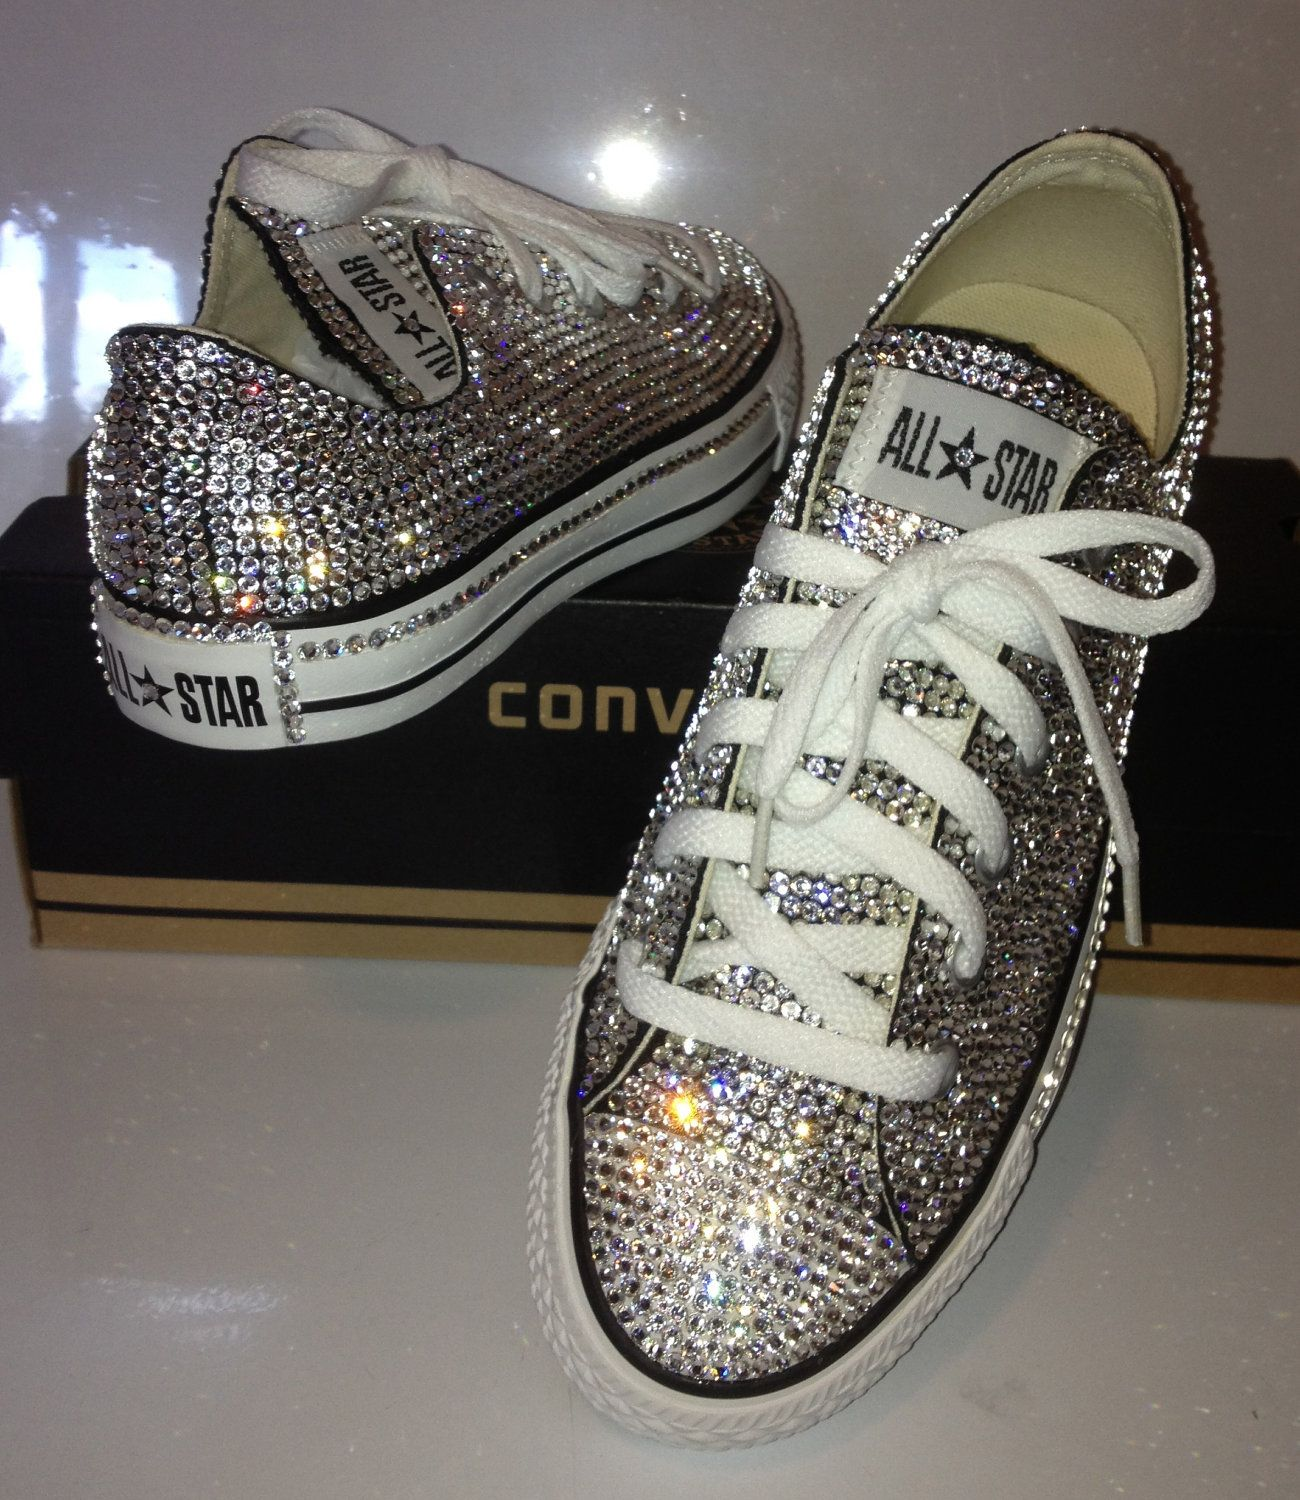 077e5b0bc5c2 Blinged Out Swarovski Crystal Converse All Star.  700.00